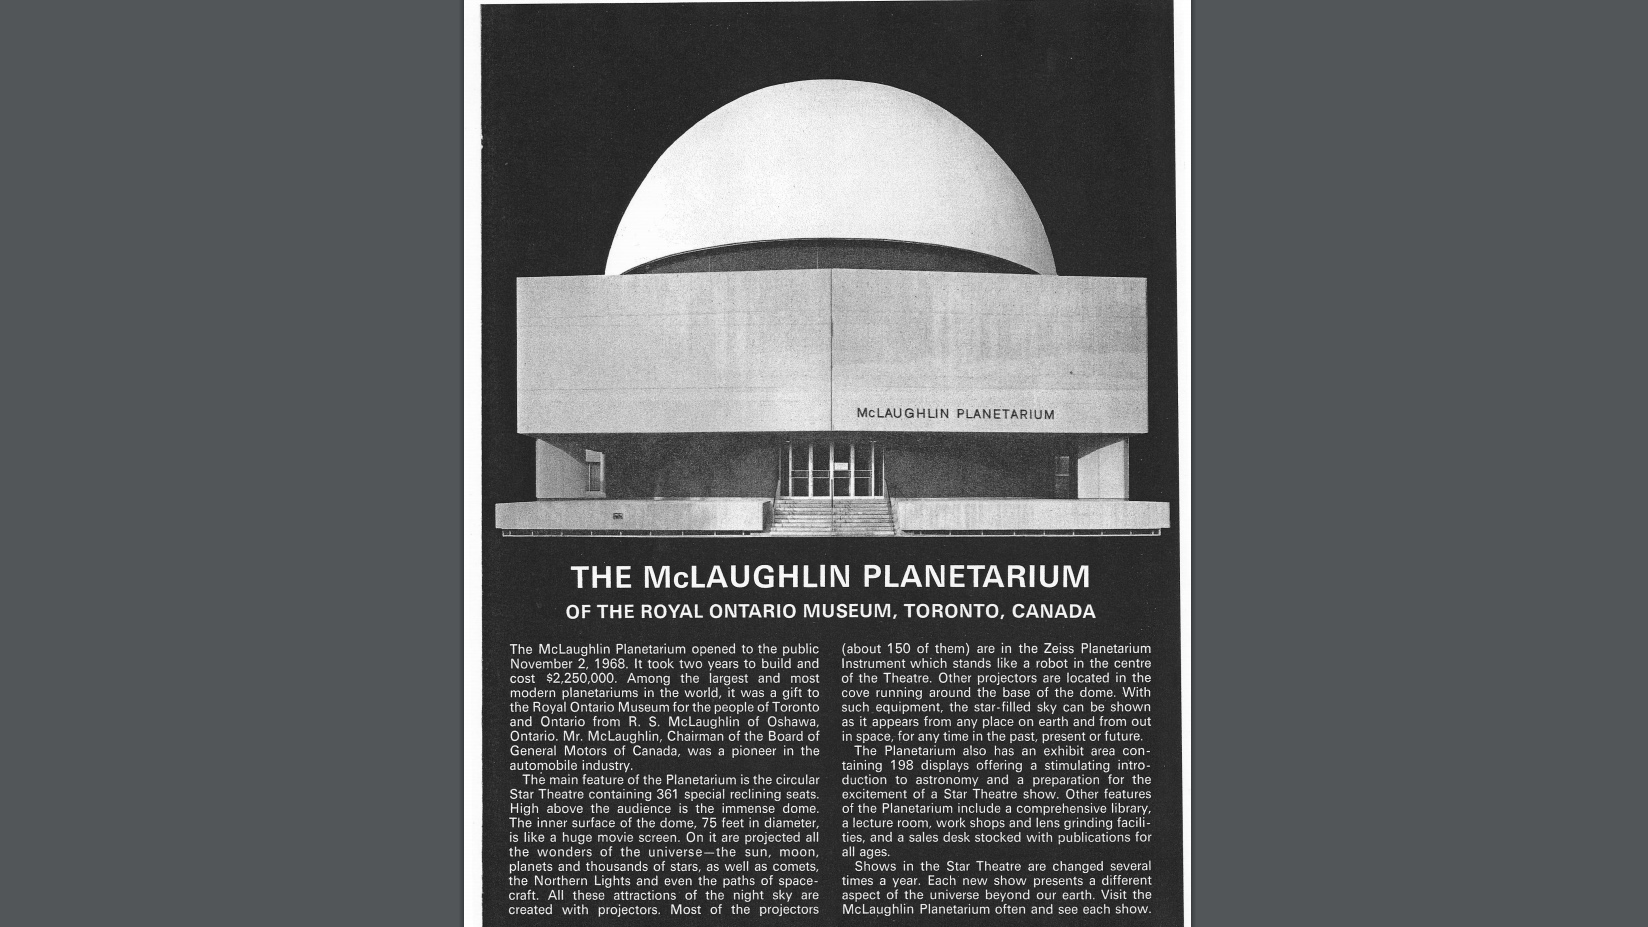 The McLaughlin Planetarium is seen in a 1969 brochure, taken from the Royal Astronomical Society of Canada website. RASC.CA